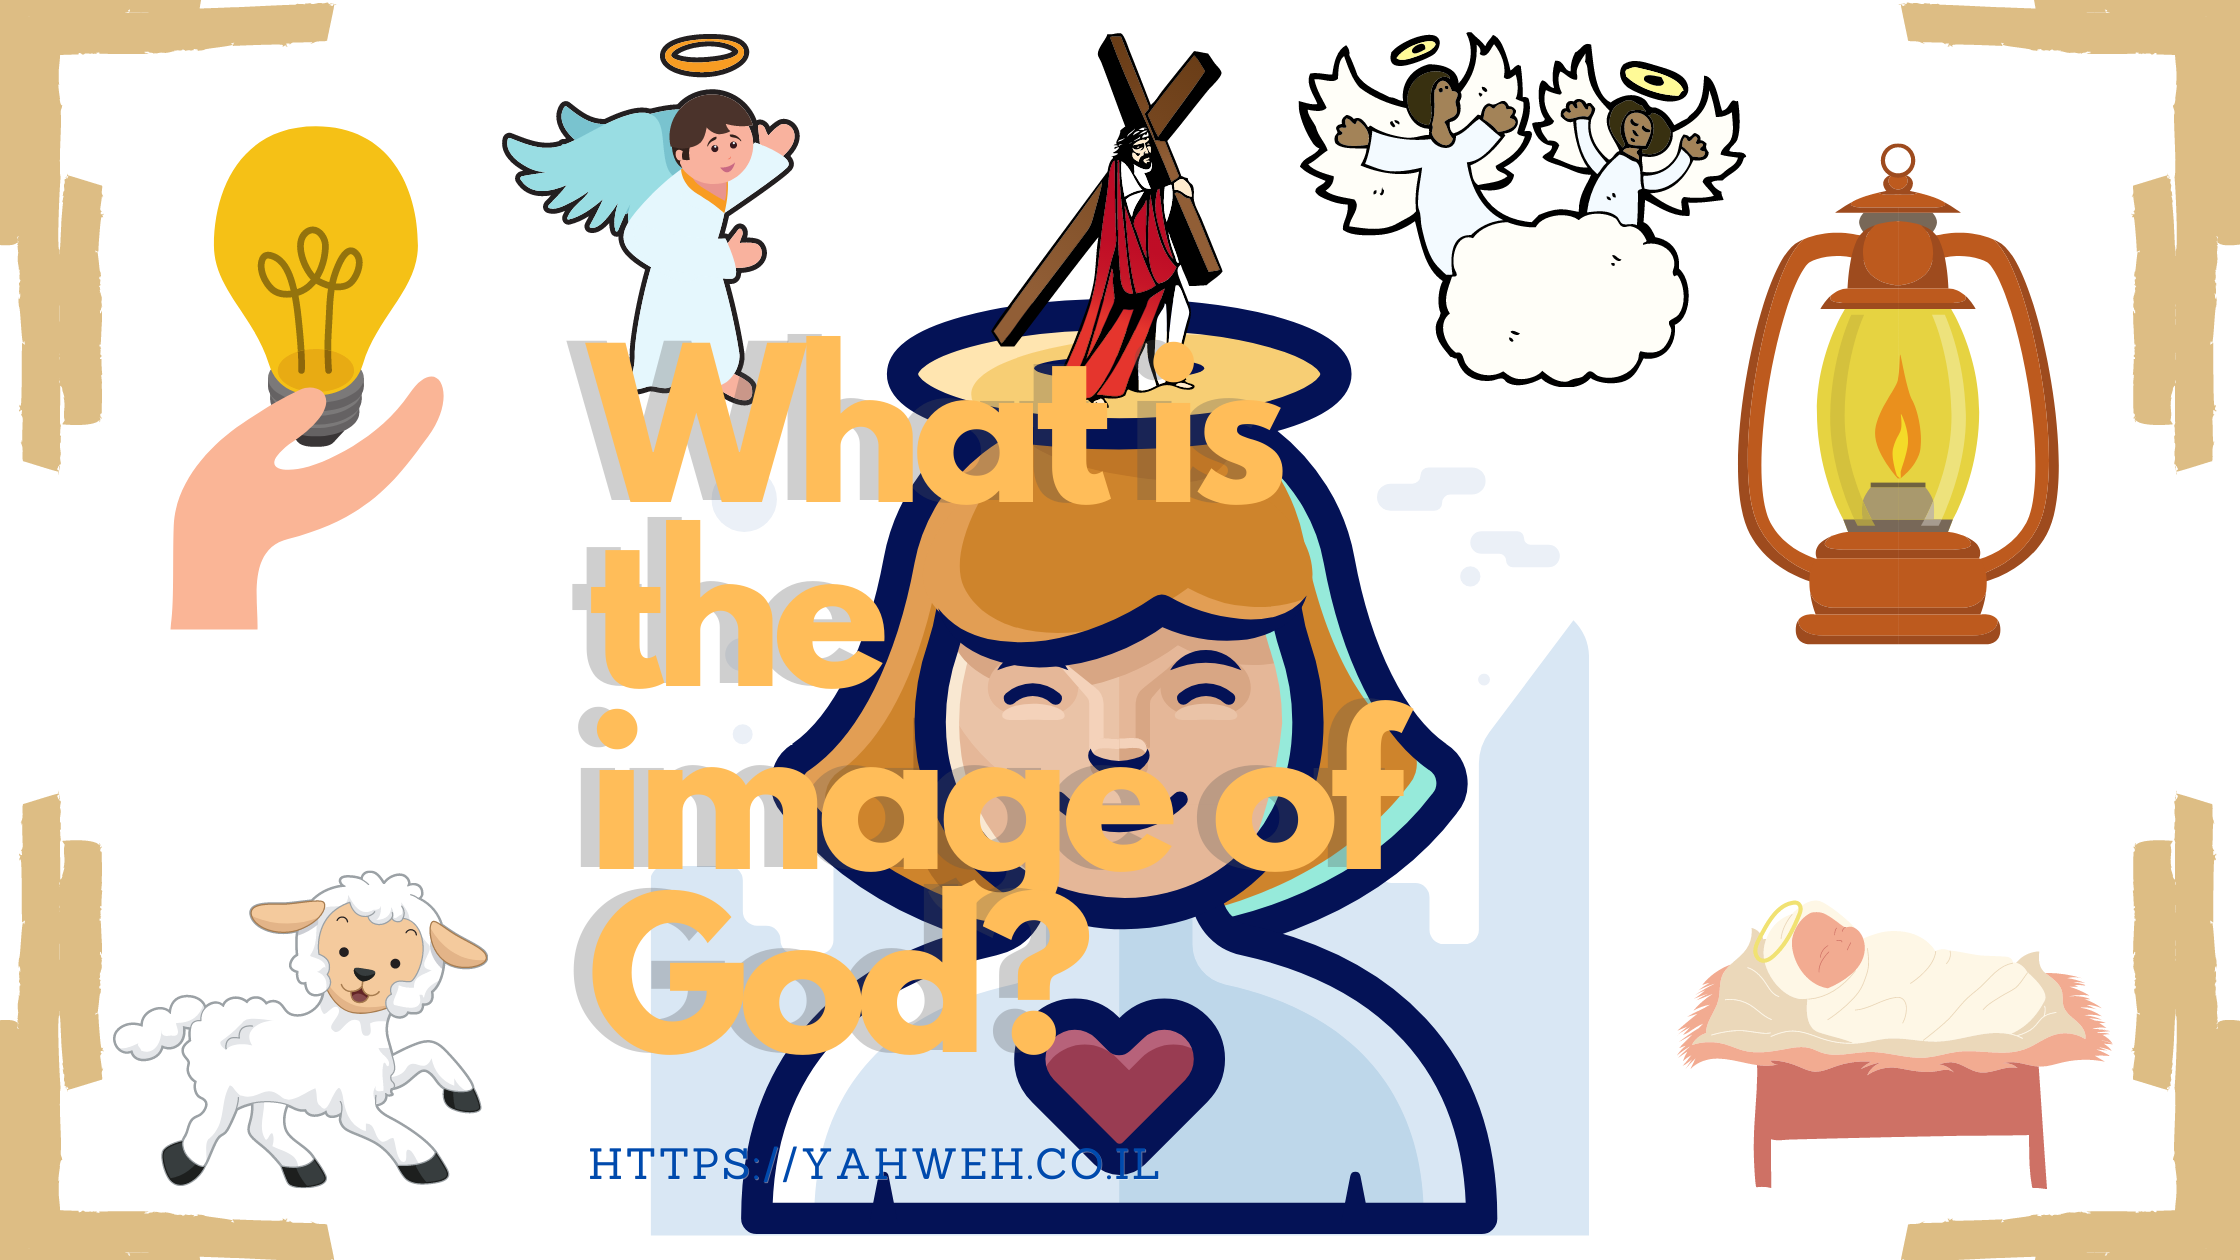 what is the image of God